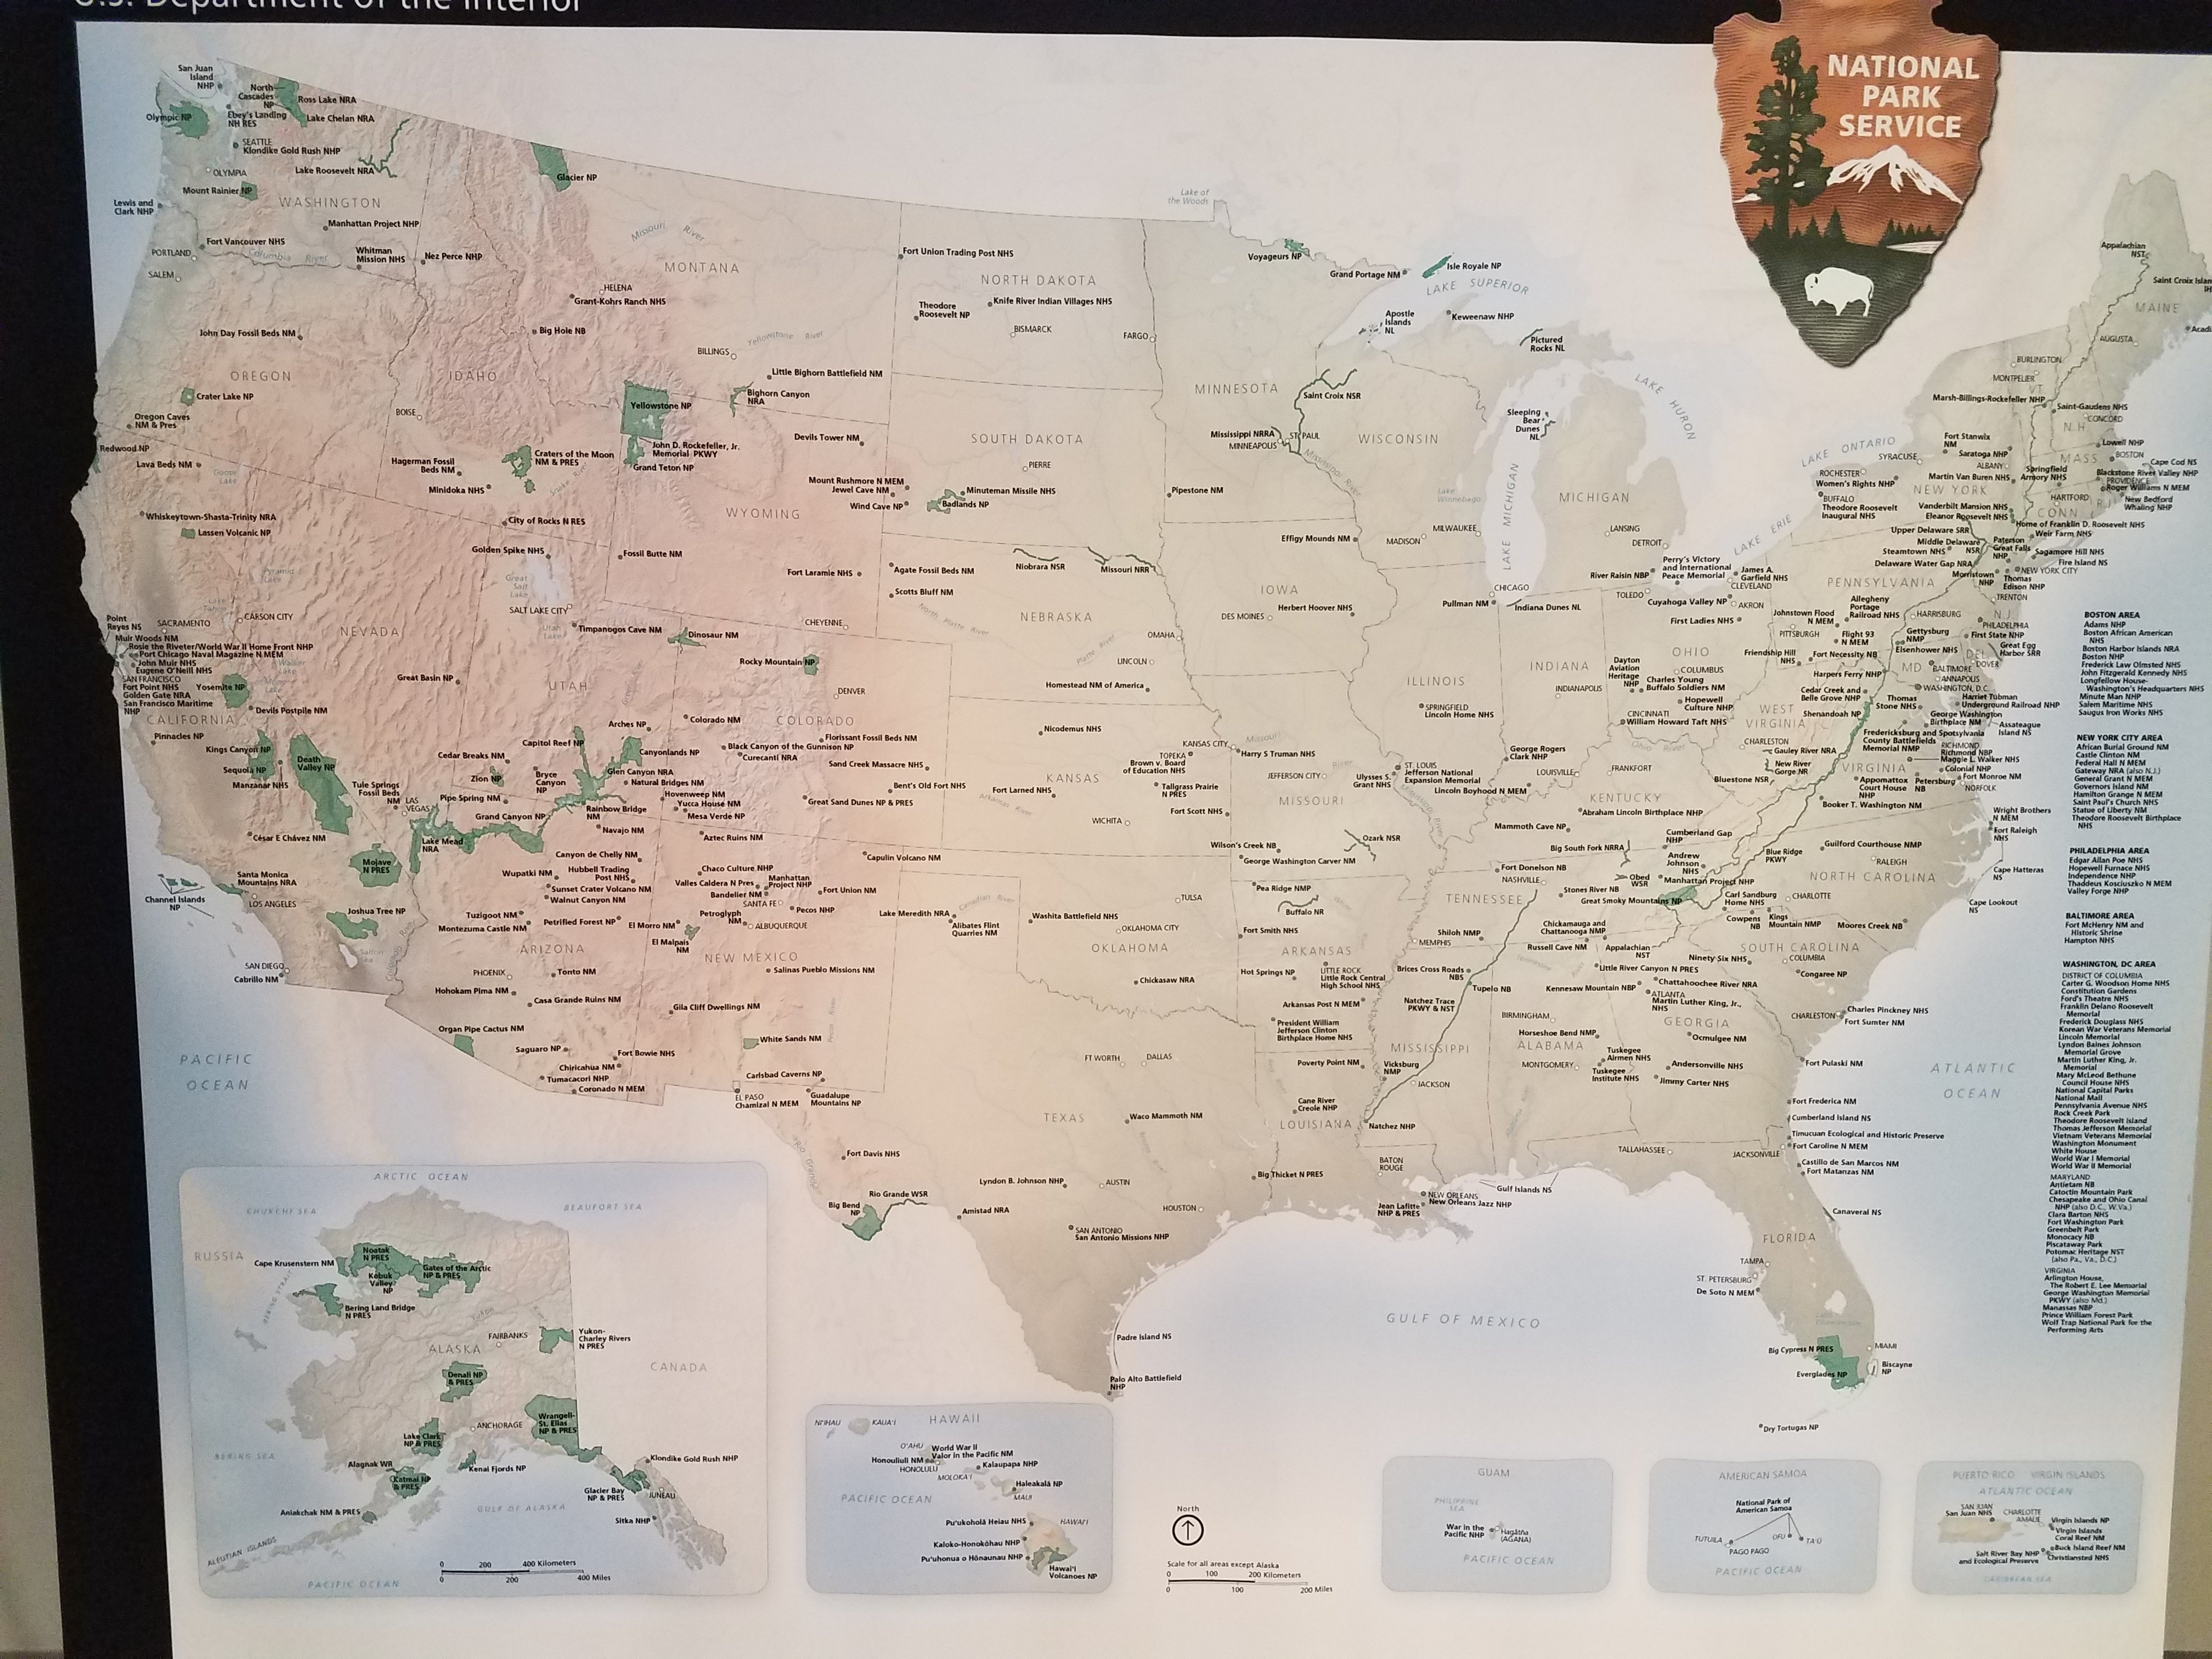 National Parks Map Five in a 5th